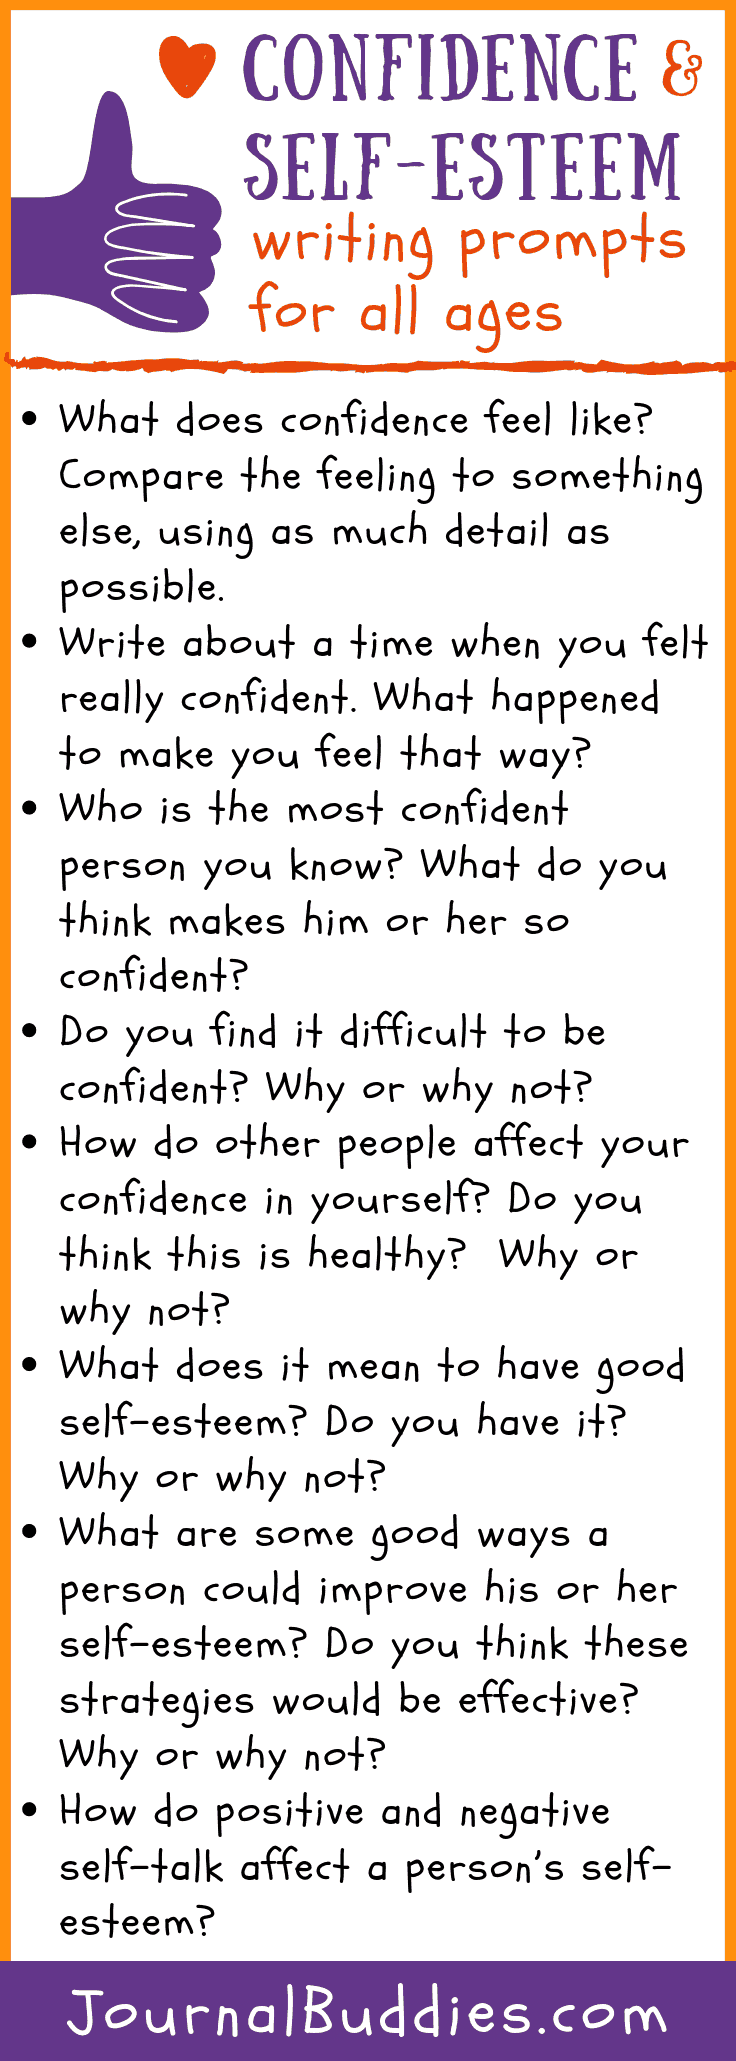 Writing Prompts to Boost Confidence